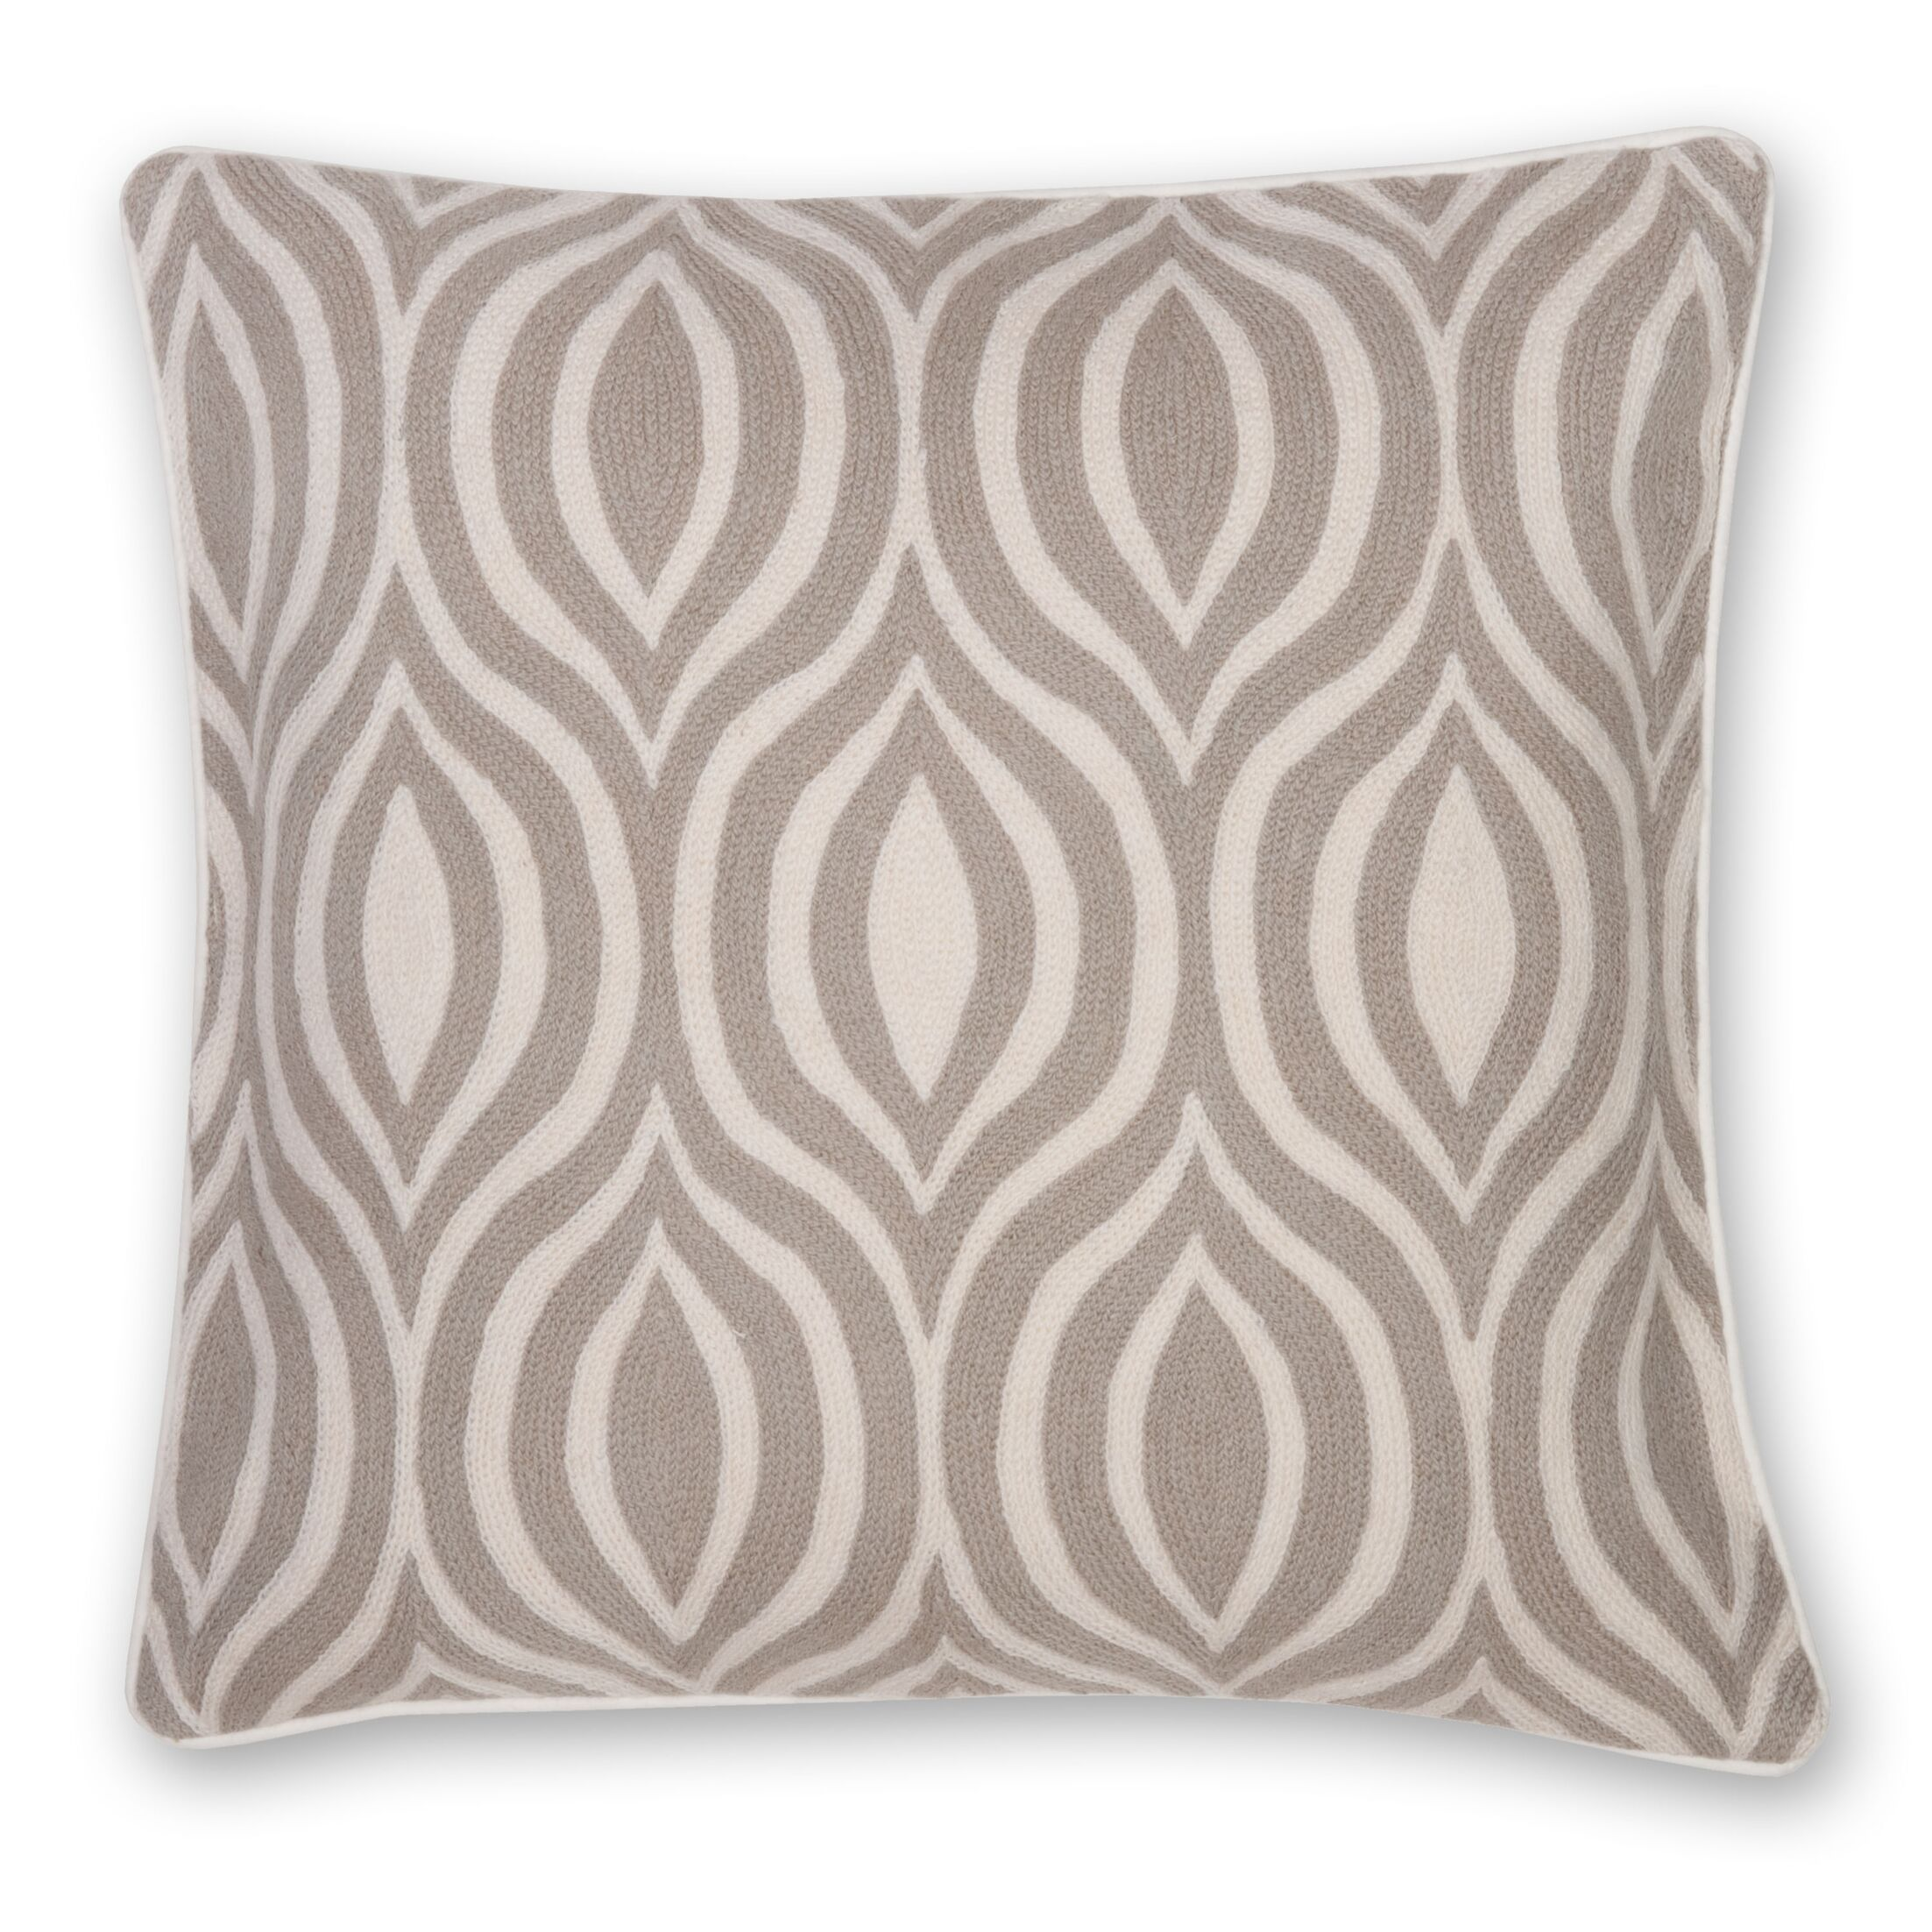 Hand Embroidery Throw Pillow Color: Natural